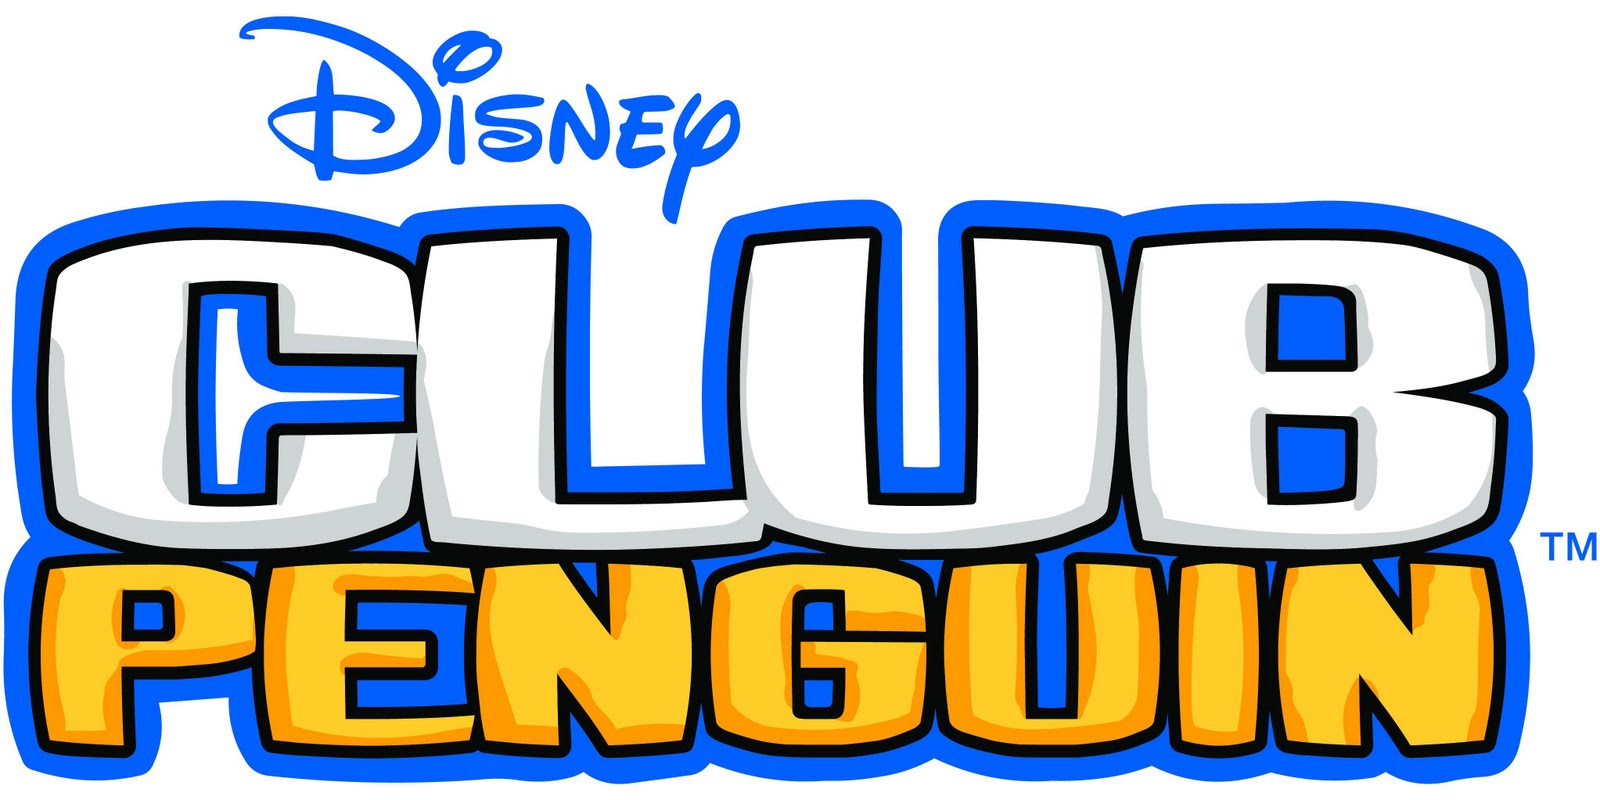 cine informacion y mas disney club penguin en la 5ta campa a coins for change. Black Bedroom Furniture Sets. Home Design Ideas